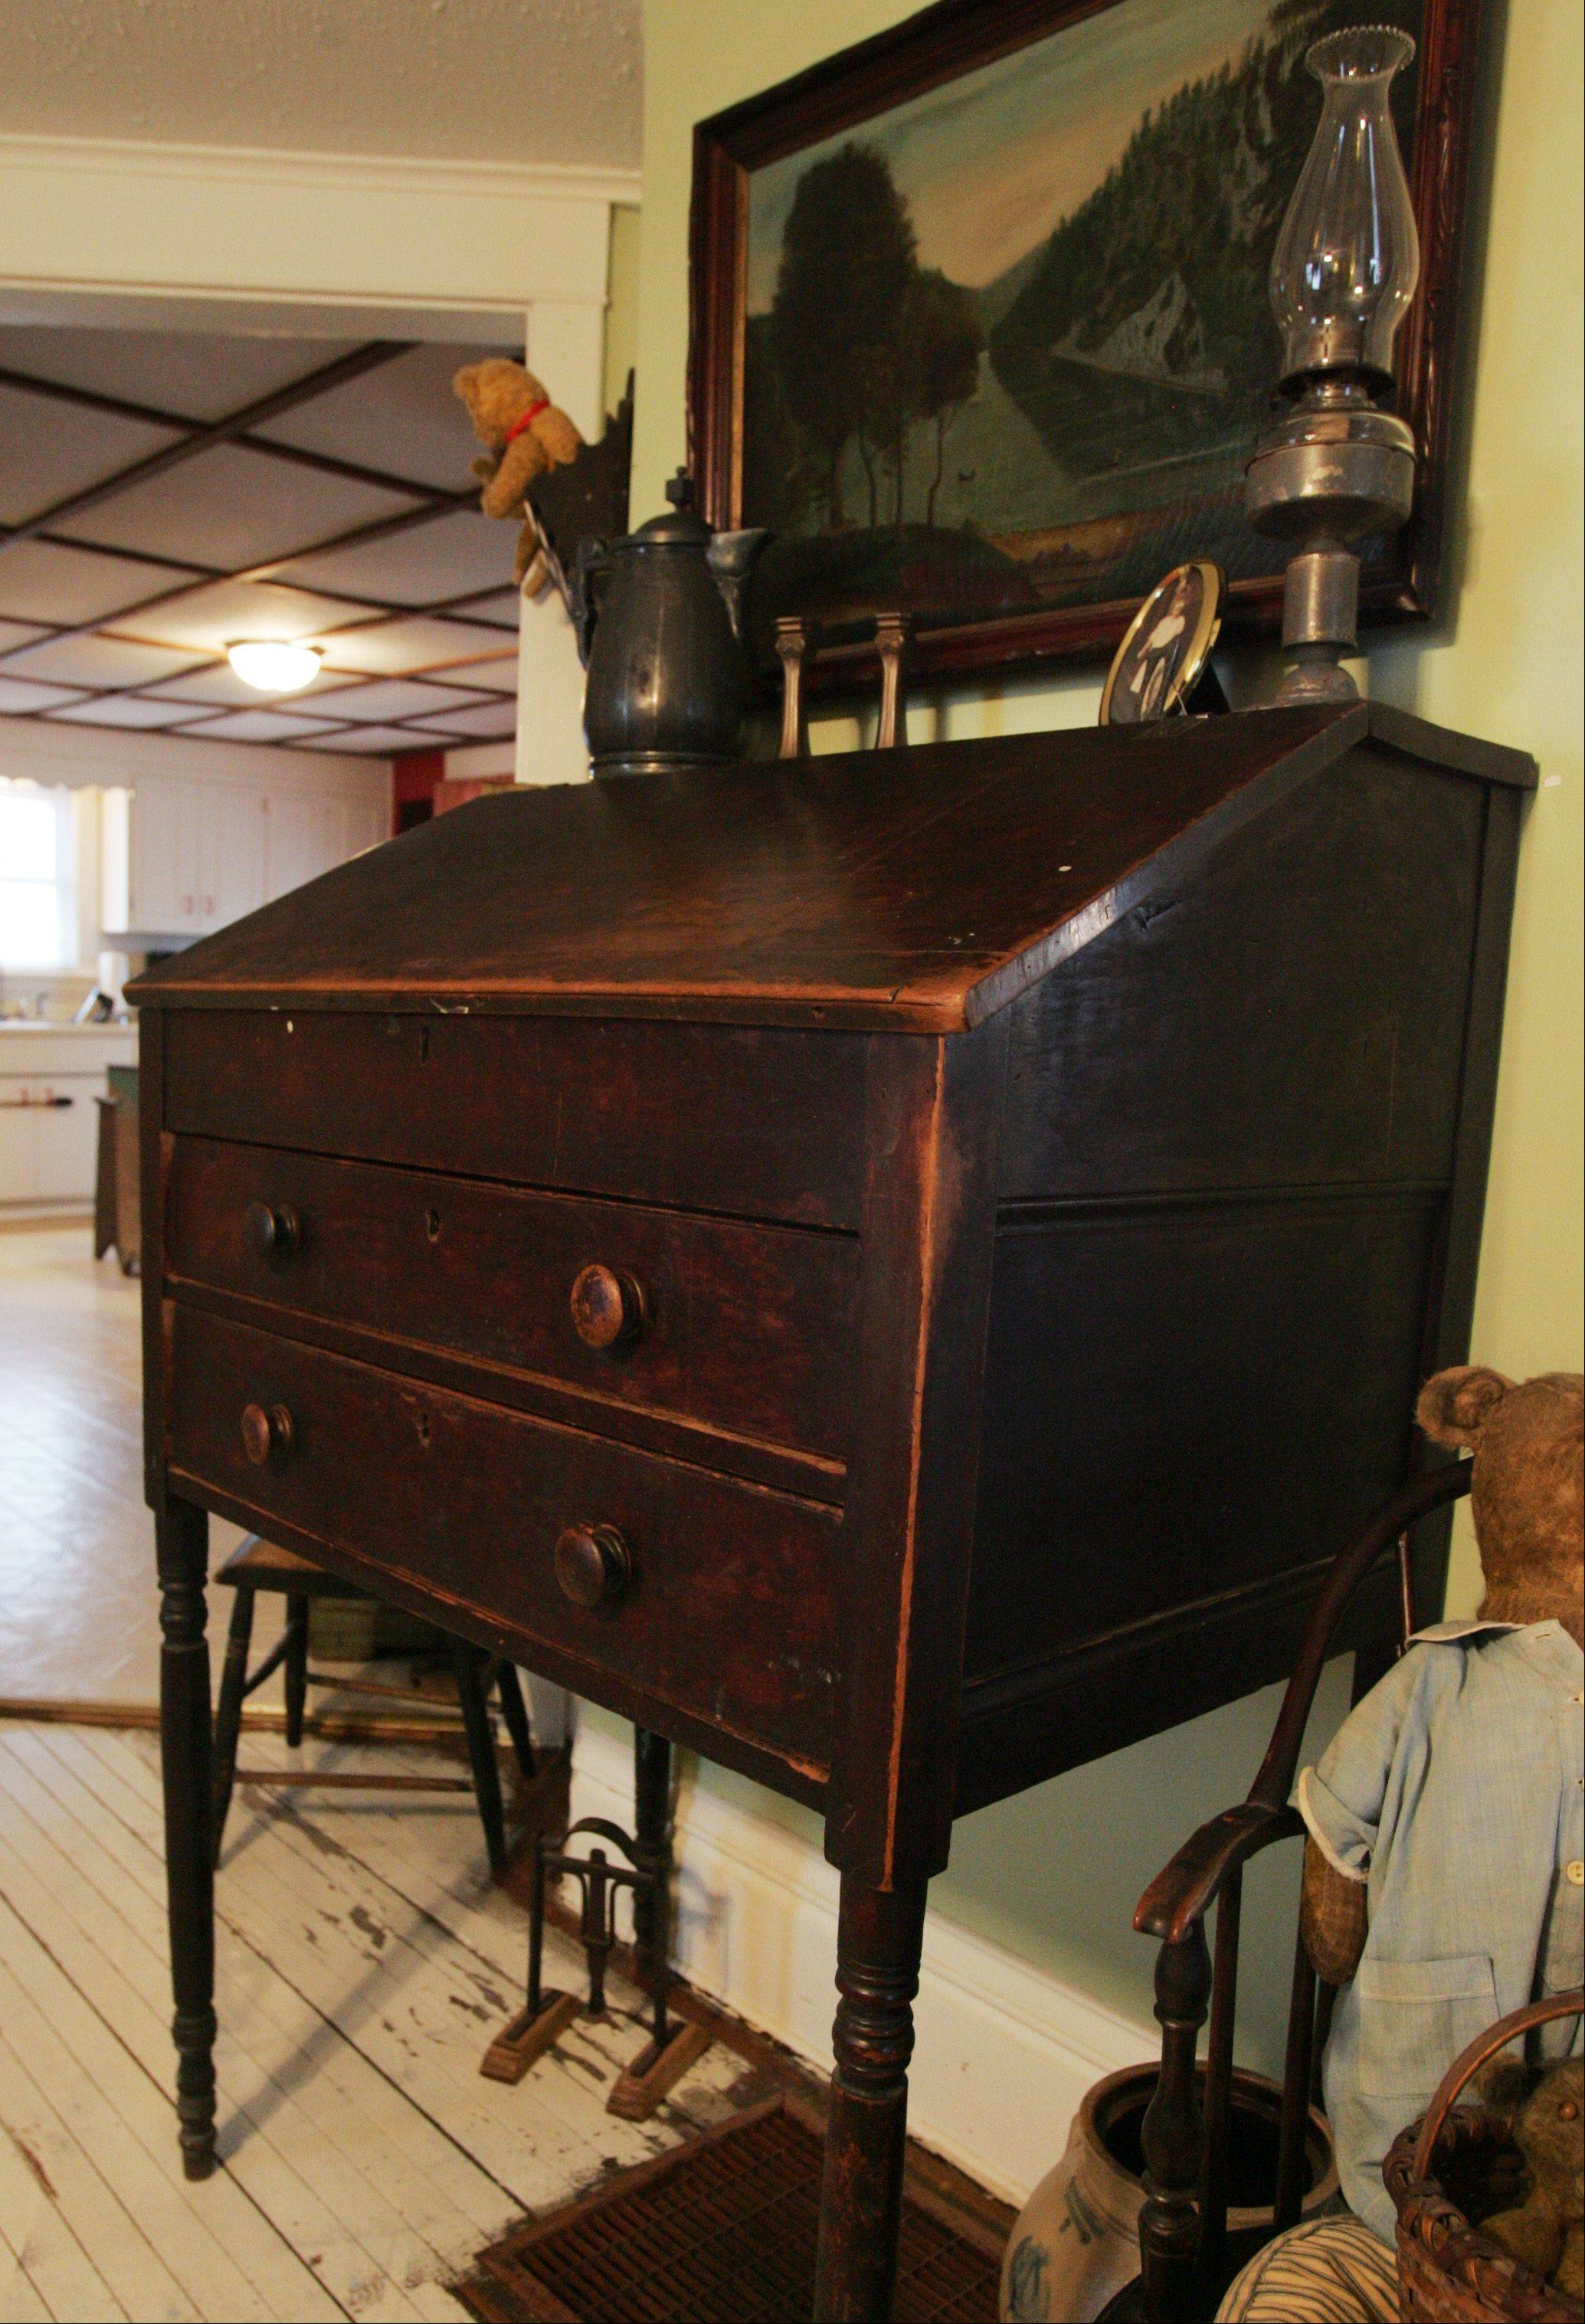 An antique desk at the Springob home has special meaning for Mary; it is a family heirloom estimated to be more than 200 years old.